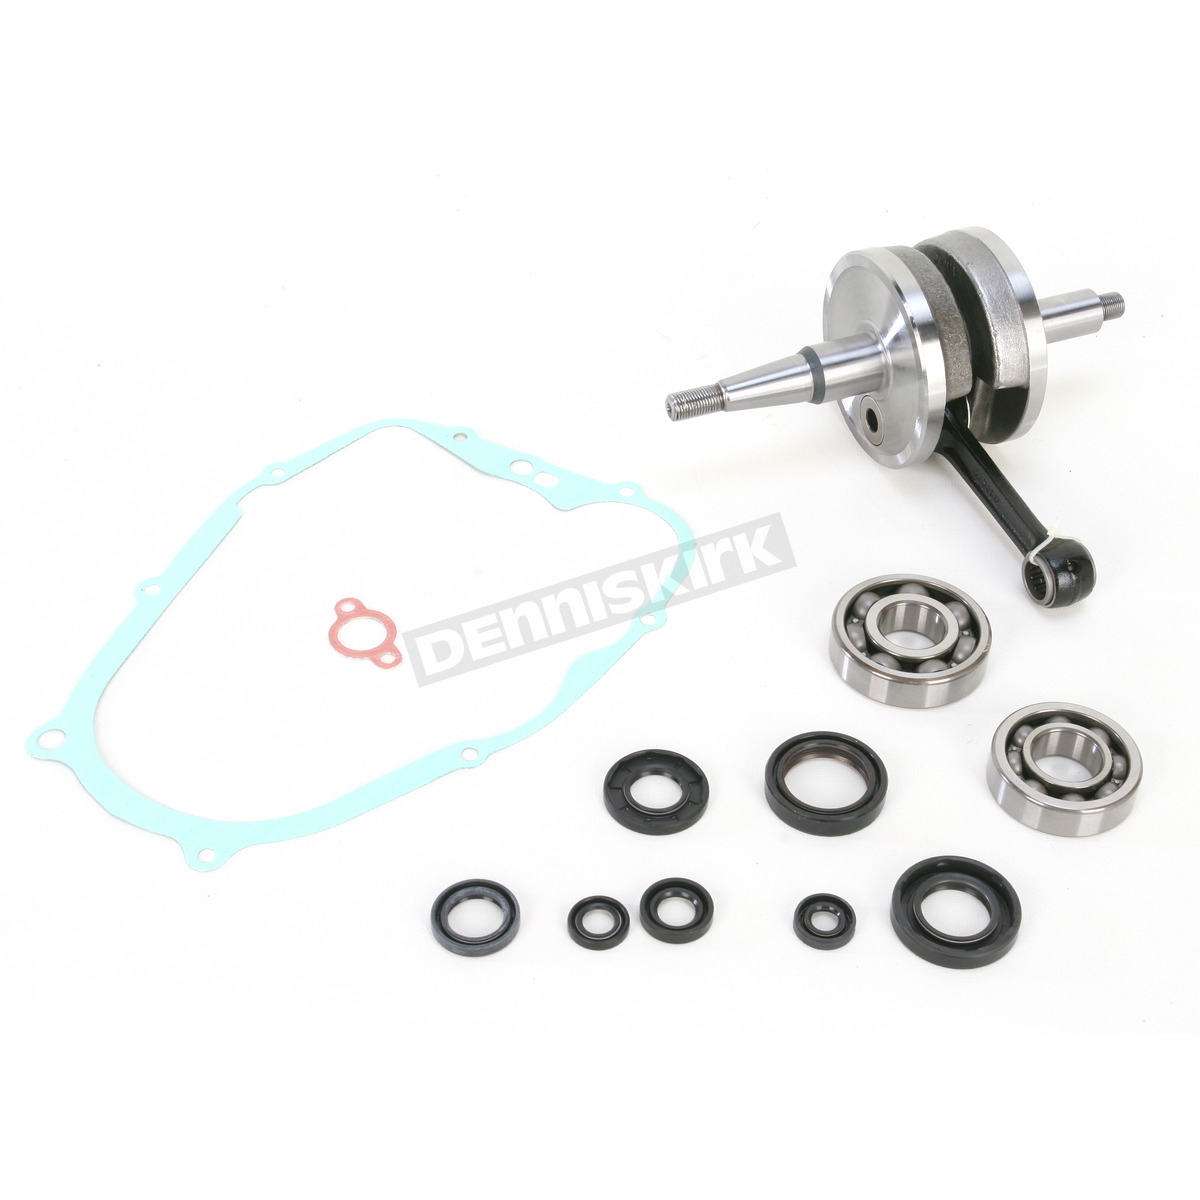 Wiseco Crankshaft W Bearings And Gaskets